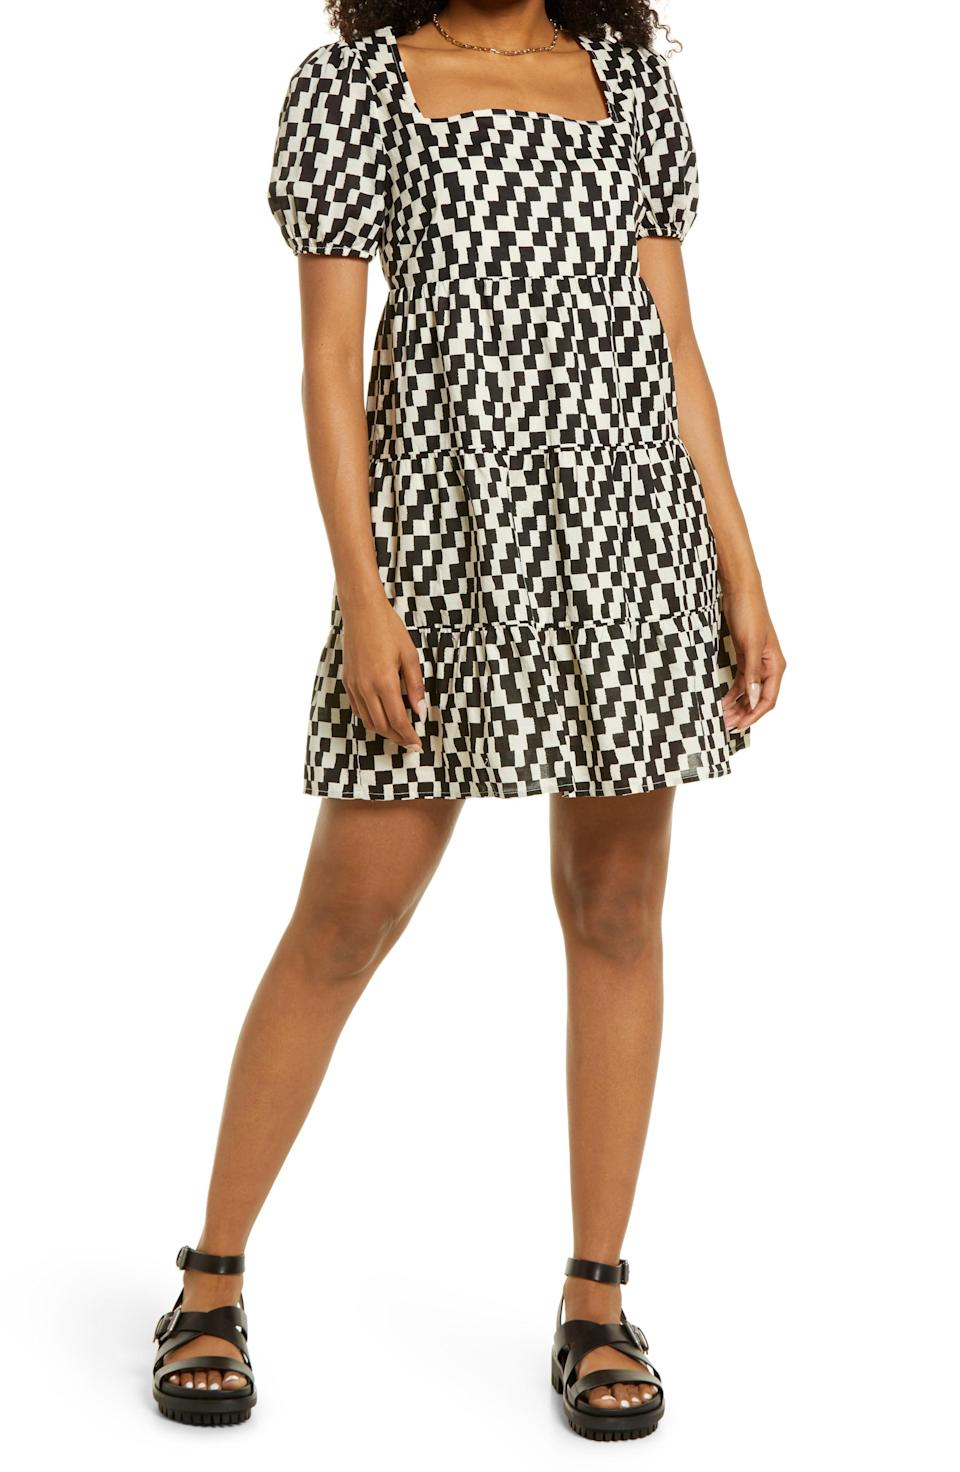 """<p><strong>BP.</strong></p><p>nordstrom.com</p><p><strong>$41.25</strong></p><p><a href=""""https://go.redirectingat.com?id=74968X1596630&url=https%3A%2F%2Fwww.nordstrom.com%2Fs%2Fbp-print-square-neck-babydoll-dress%2F5818603&sref=https%3A%2F%2Fwww.elle.com%2Ffashion%2Fshopping%2Fg37873182%2Fnordstrom-fall-clothing-sale%2F"""" rel=""""nofollow noopener"""" target=""""_blank"""" data-ylk=""""slk:Shop Now"""" class=""""link rapid-noclick-resp"""">Shop Now</a></p><p>This checkered print babydoll dress is so fun! I'm already thinking about all the places I'm going to wear it. </p>"""